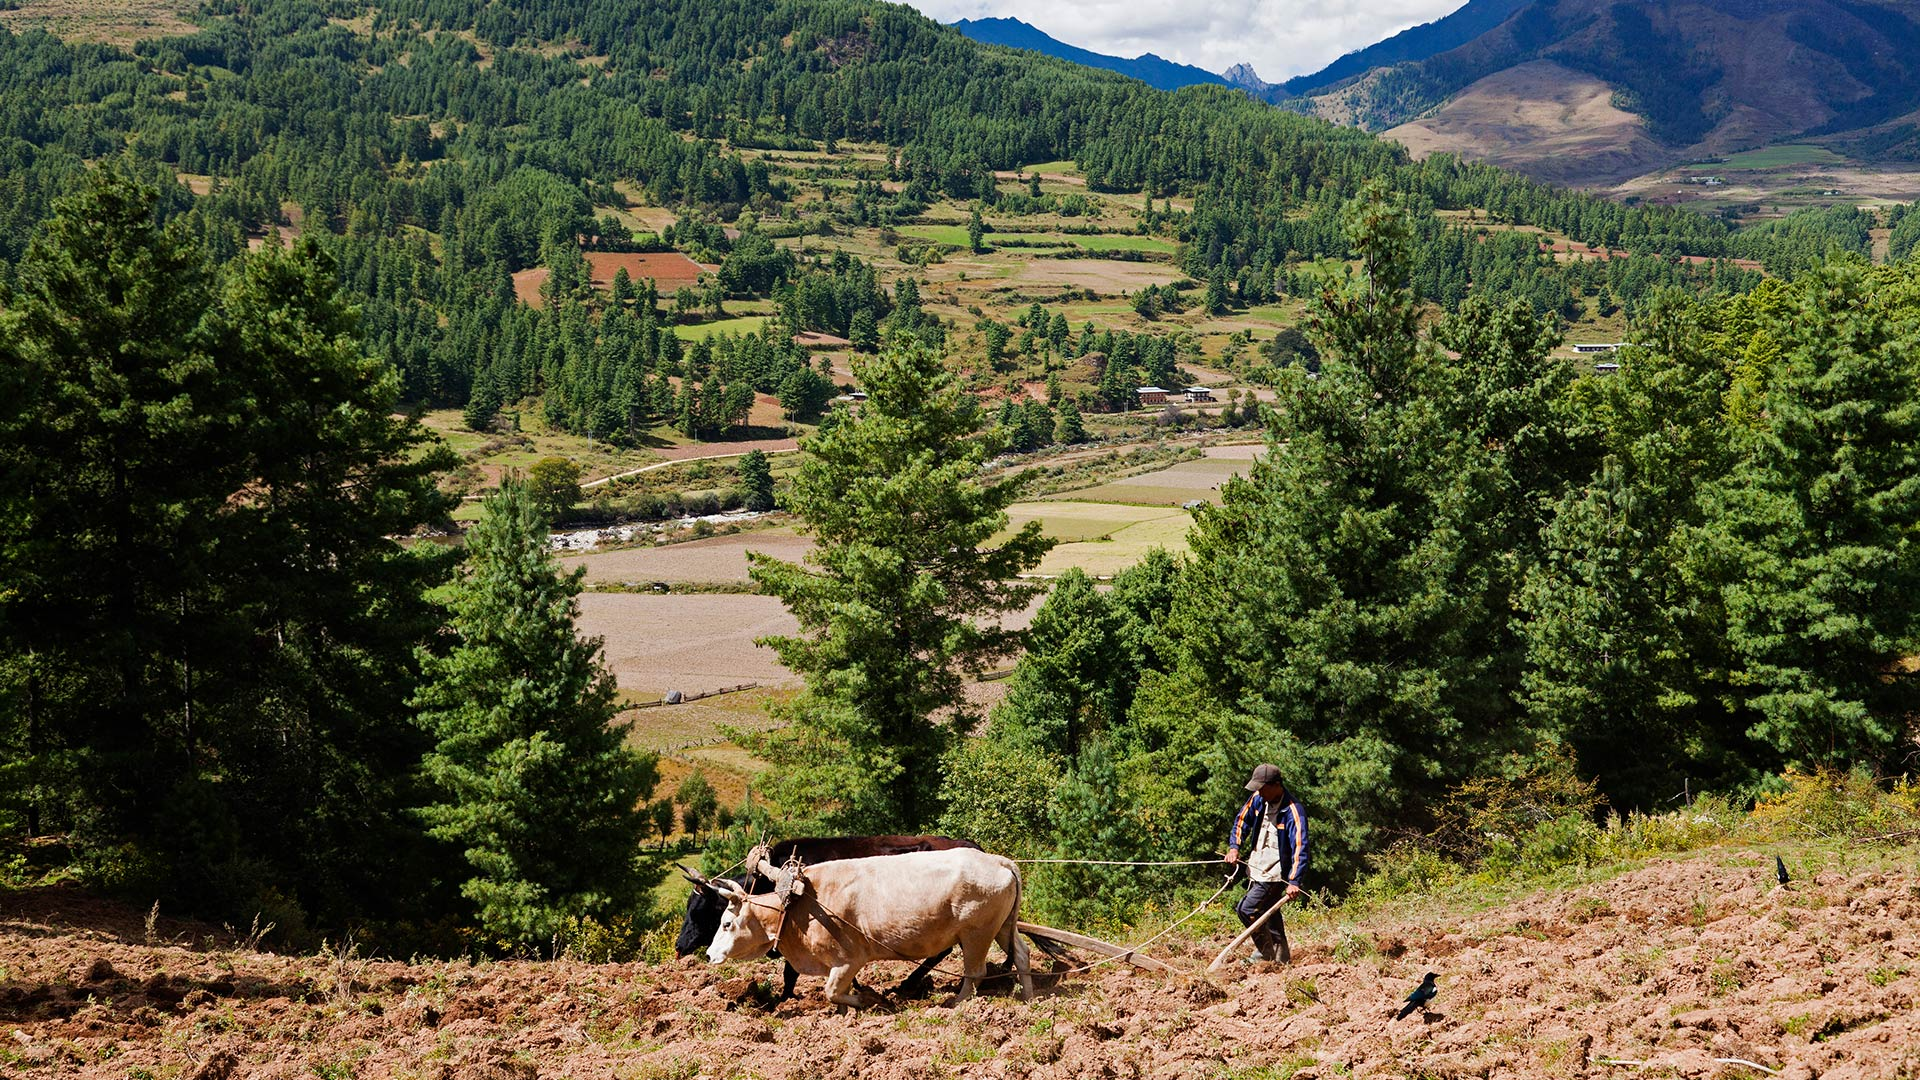 A farmer plowing the fields on a steep hillside in the Tang Valley of Bhutan